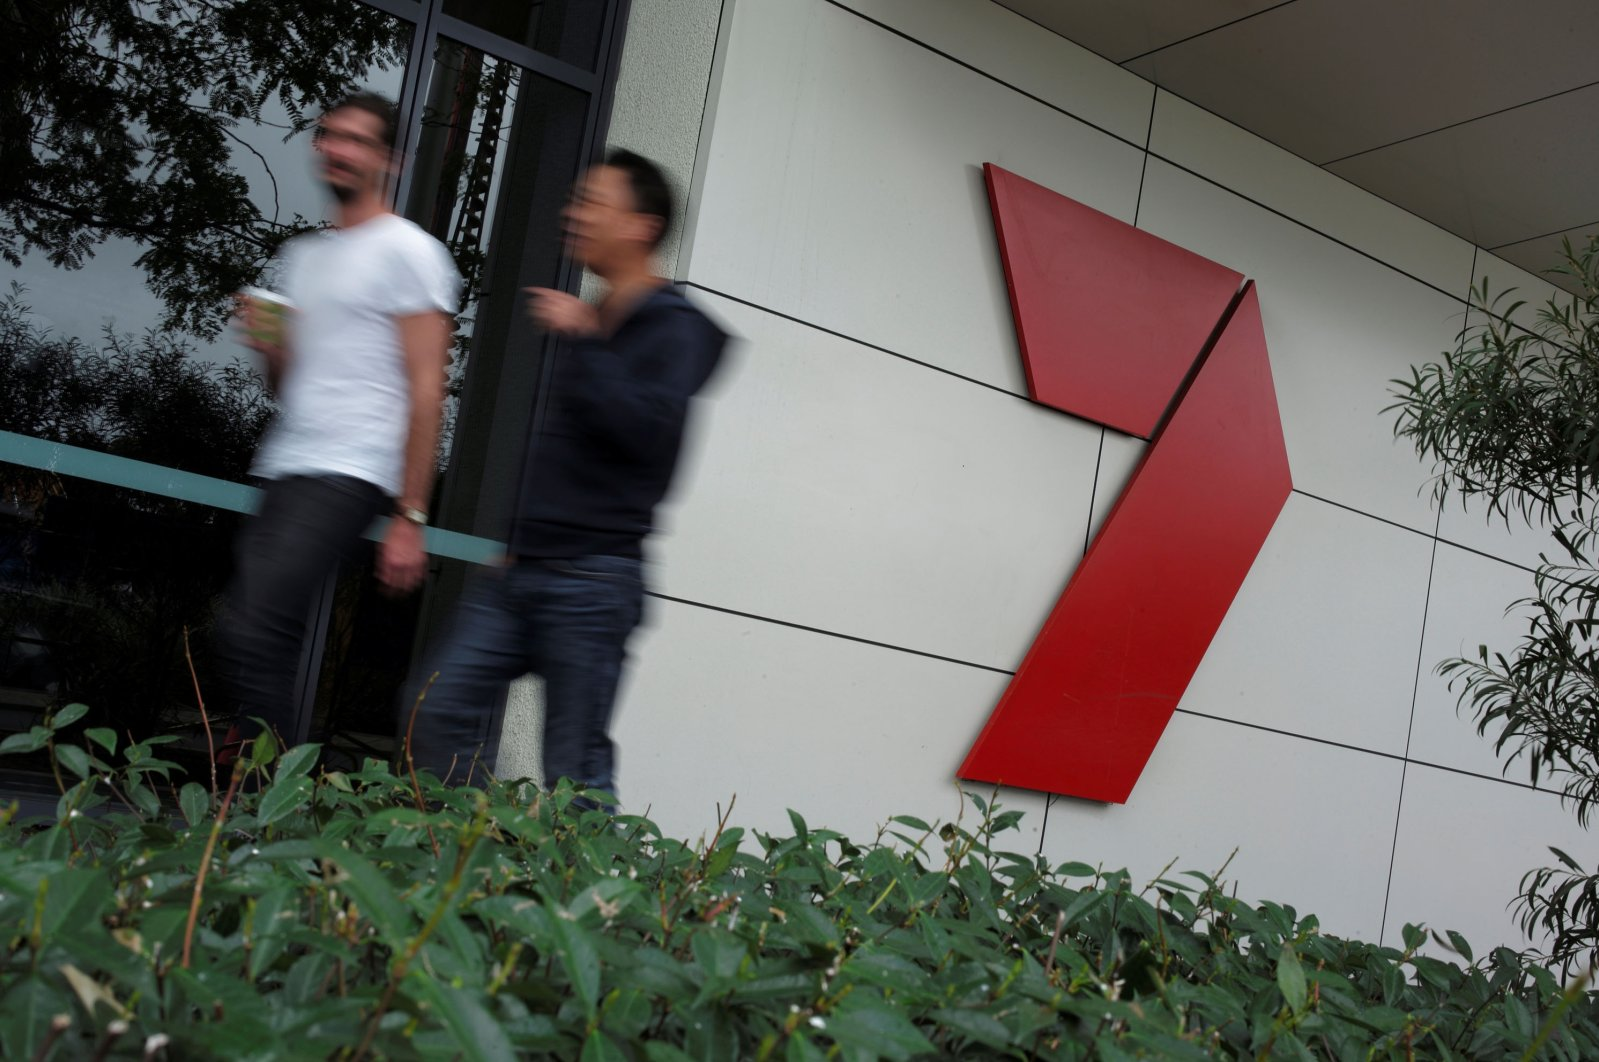 Workers walk past the headquarters of media broadcaster/publisher Seven West Media in Sydney, Australia on Feb. 14, 2017. (Reuters Photo)